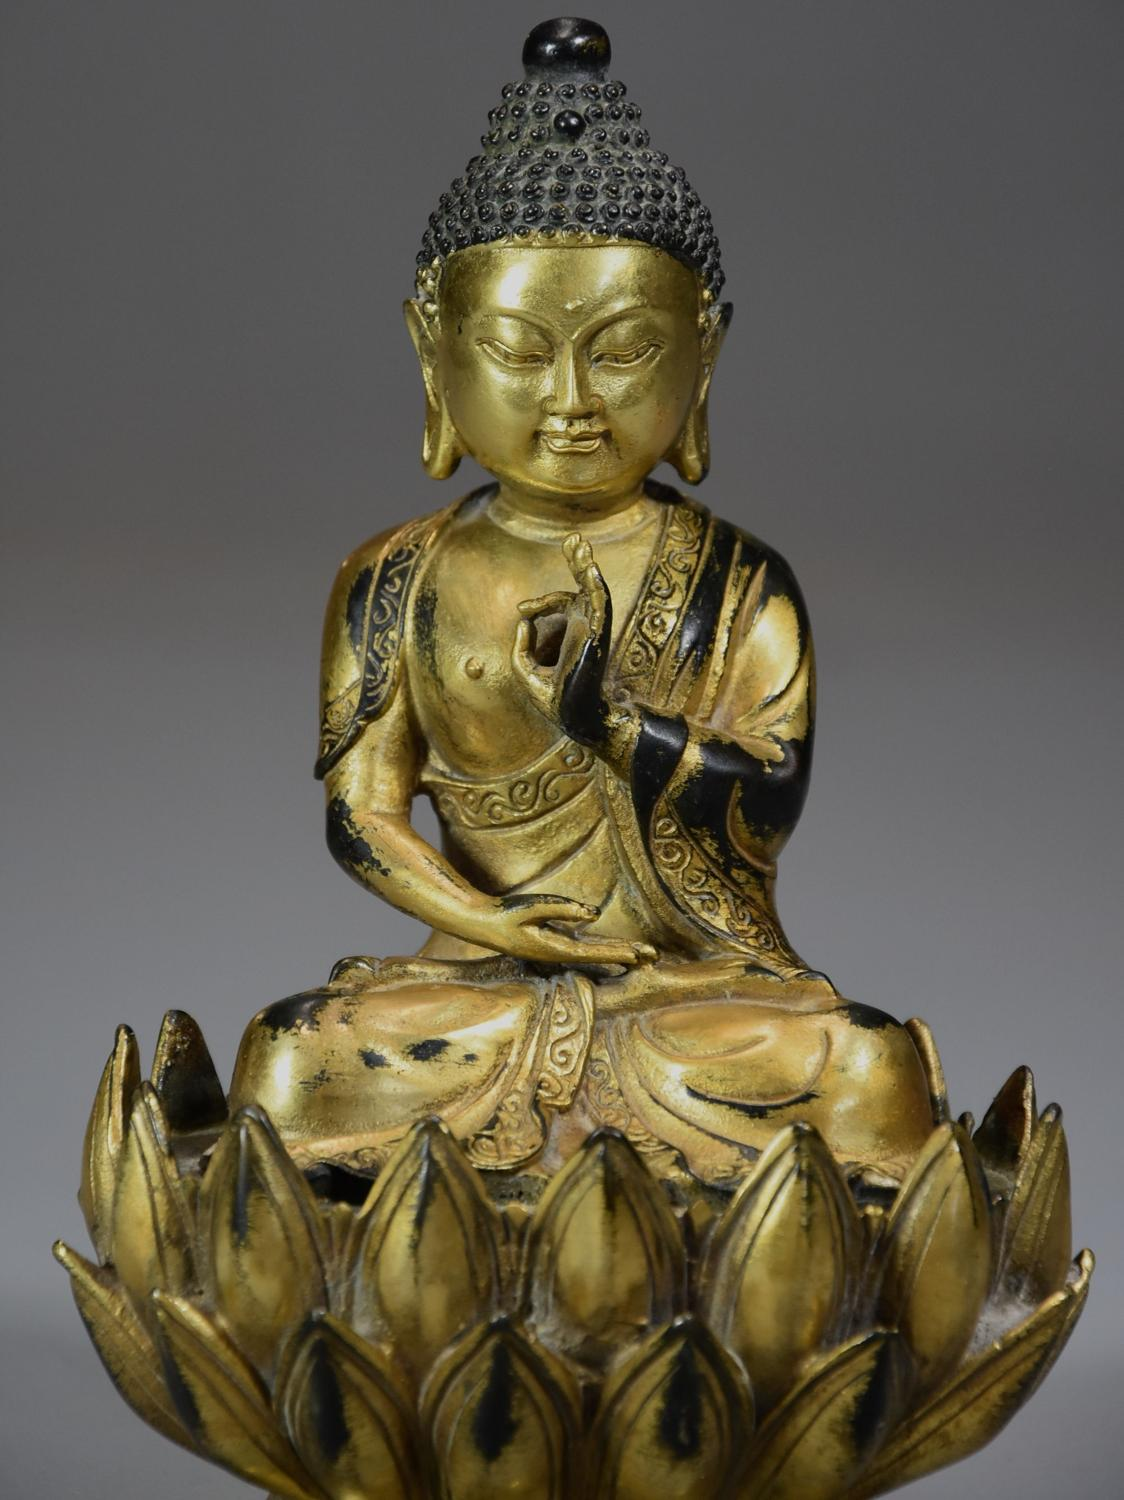 Superb quality gilt bronze Tibetan Buddha seated within a lotus flower